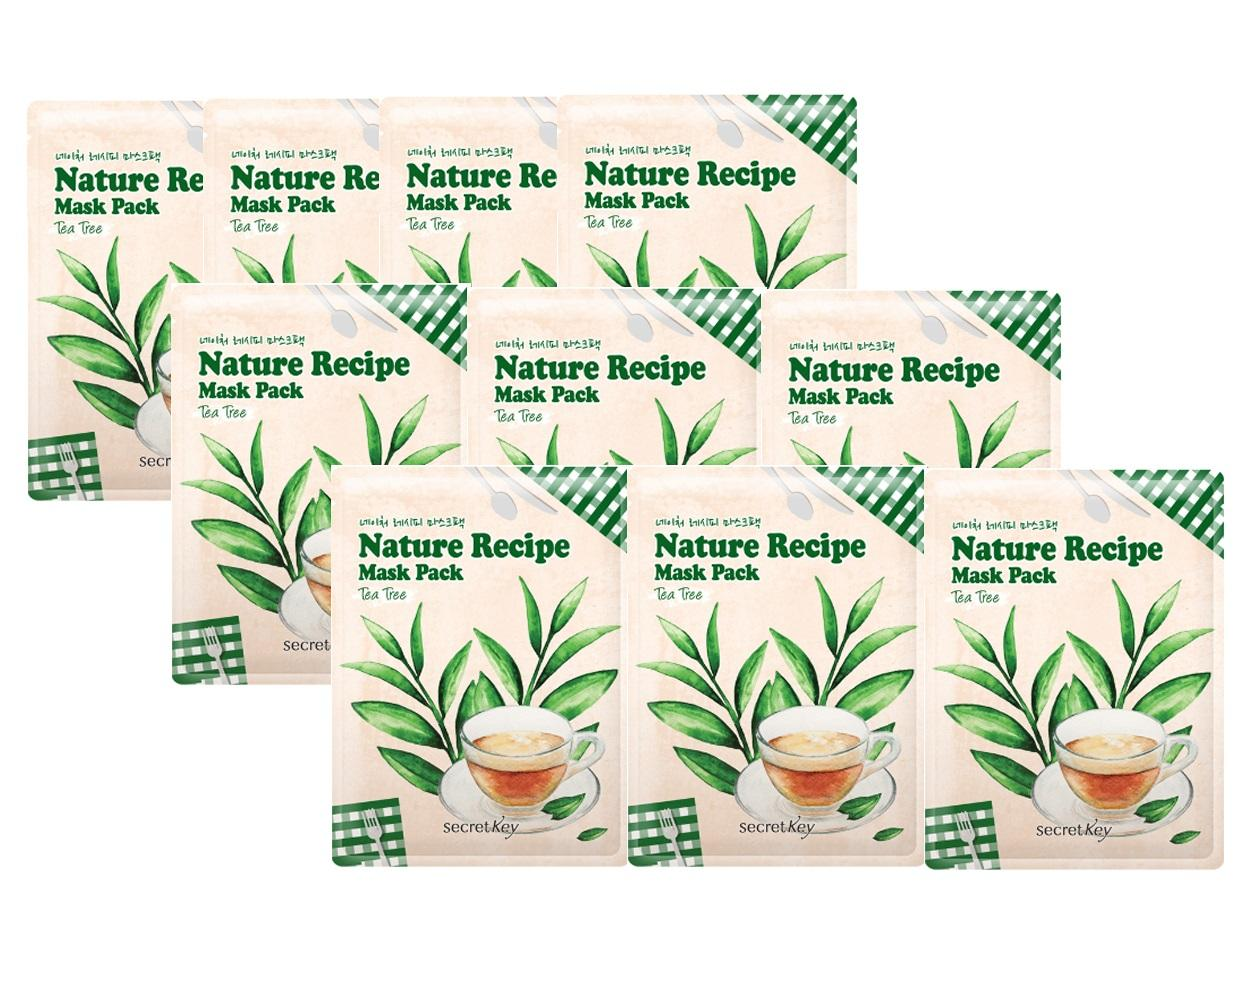 Giá Bán Bộ 10 Goi Mặt Nạ Dưỡng Da Trị Mụn Danh Cho Da Nhạy Cảm Chiết Xuất Tram Tra Secret Key Nature Recipe Mask Pack Tea Tree 10Pcs Nhãn Hiệu Secret Key